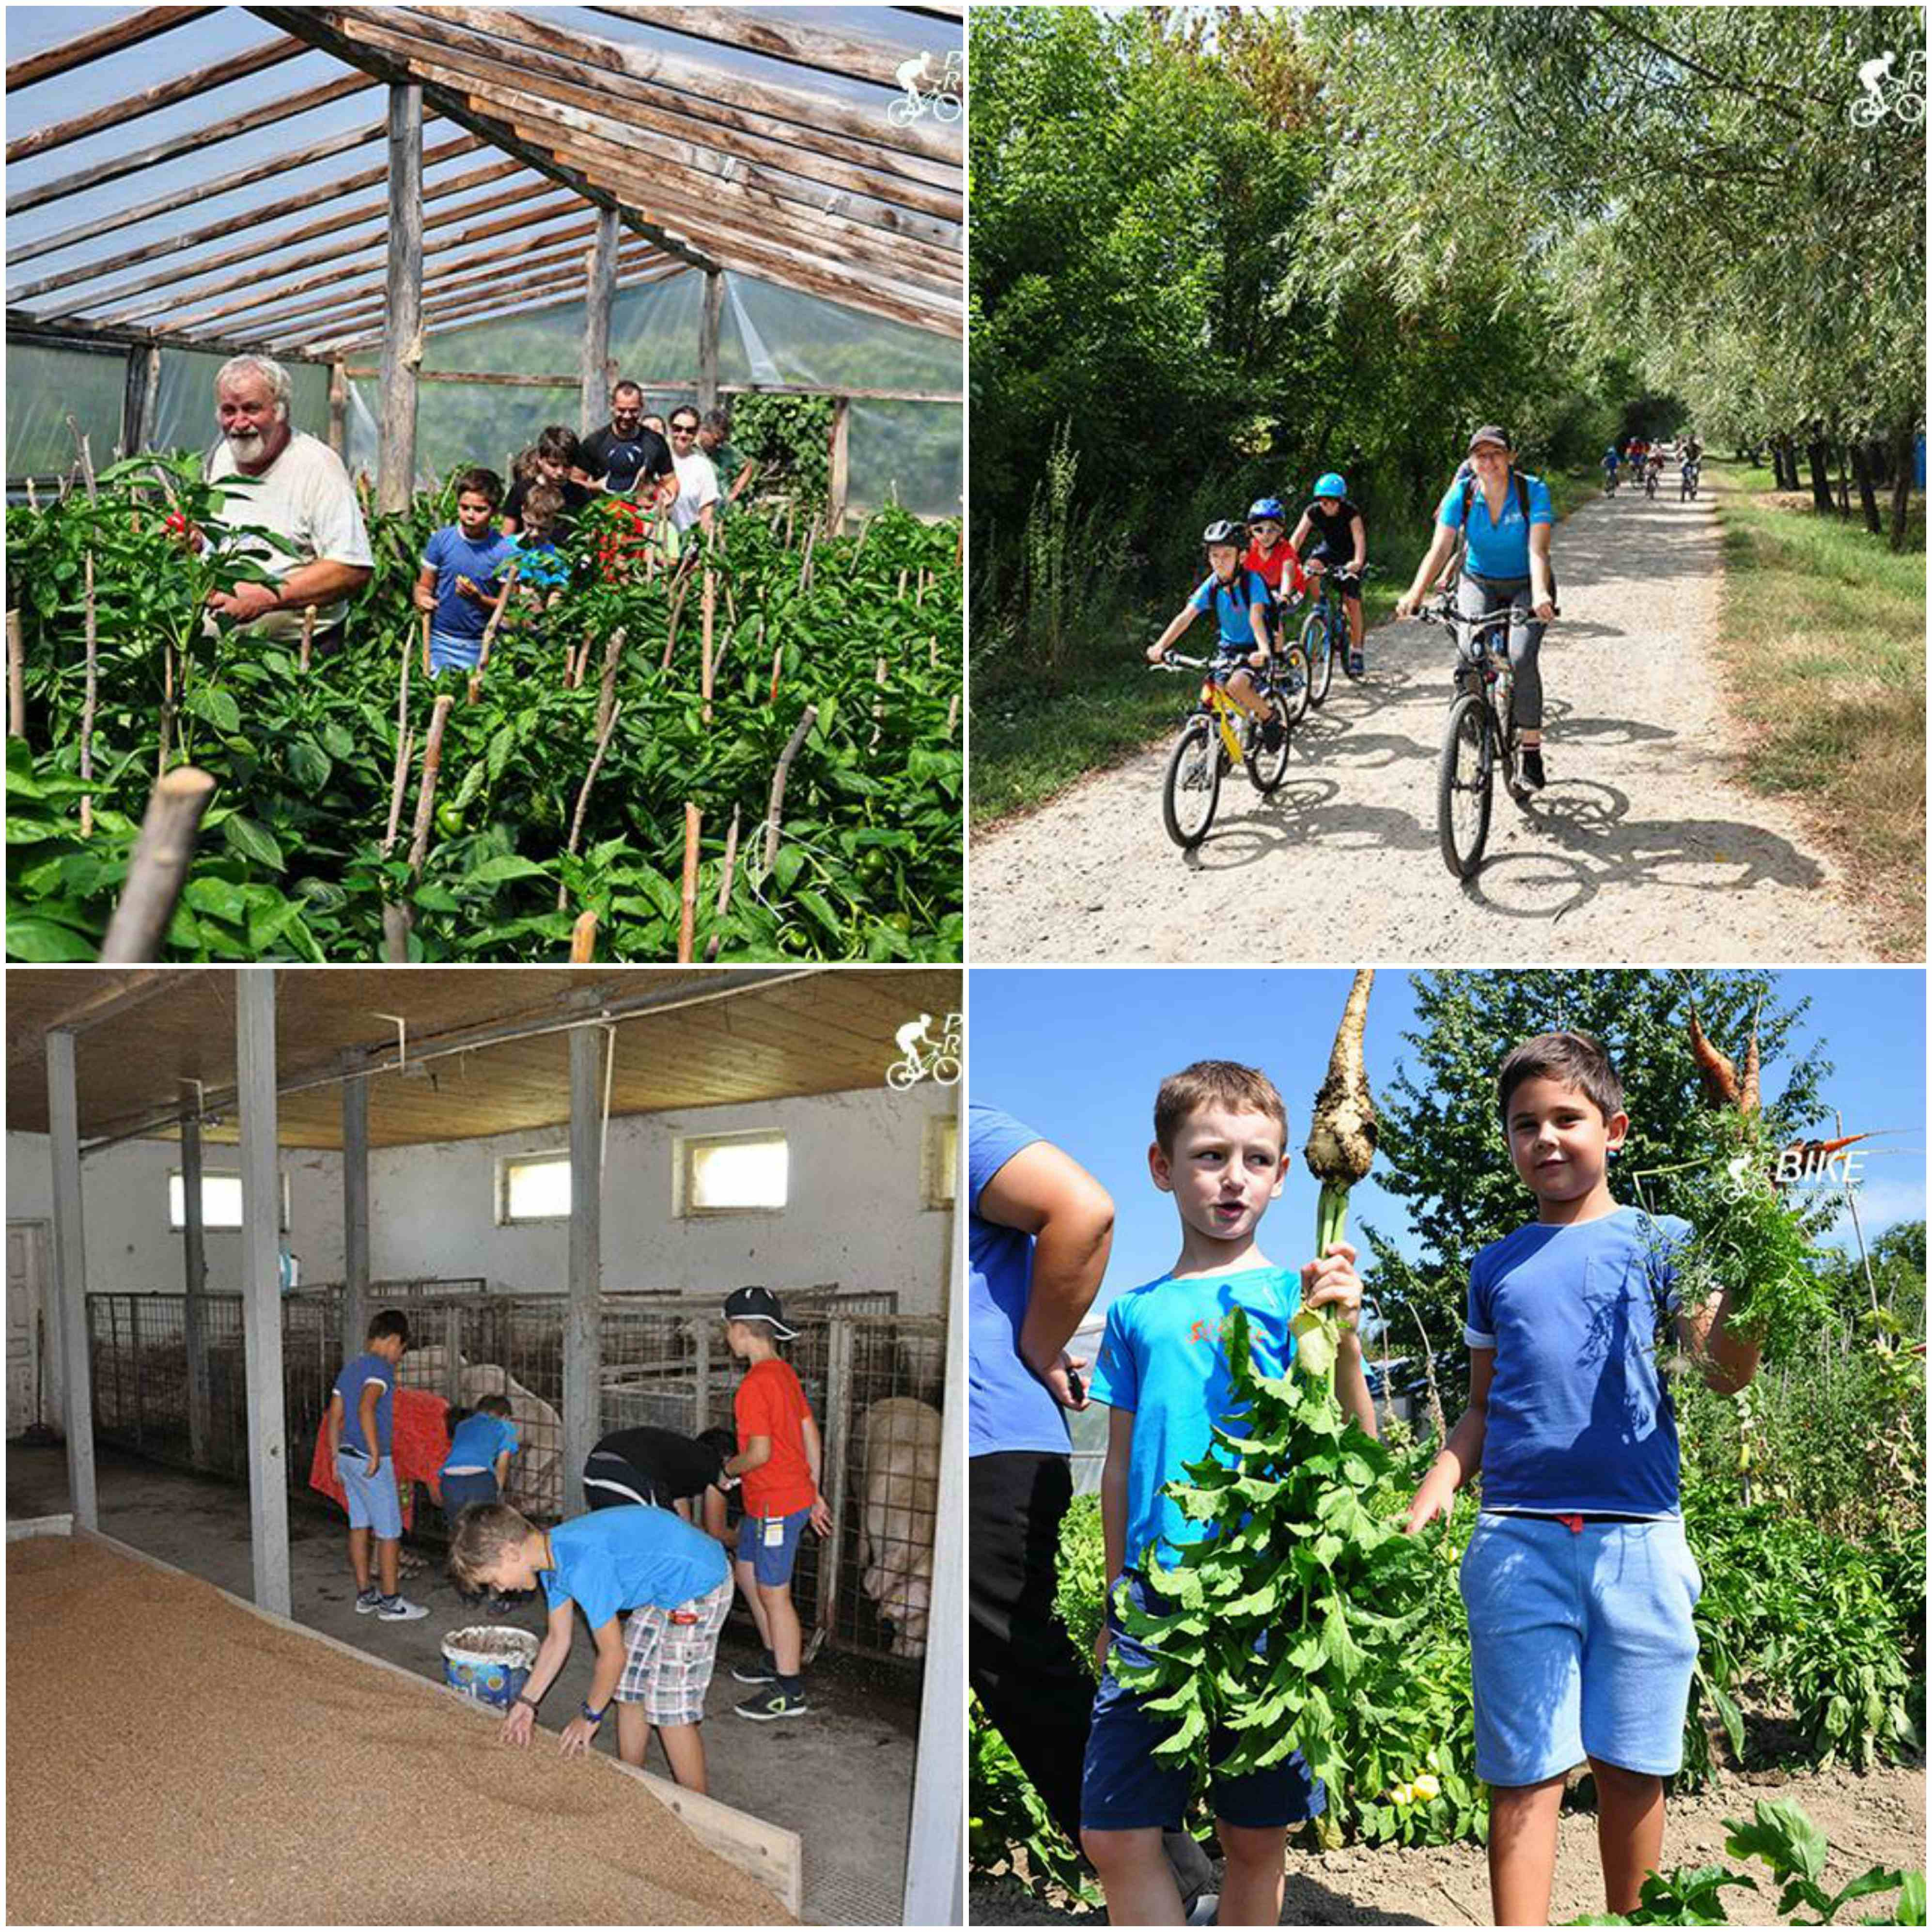 probikeaddiction bike touring cicloturism in familie